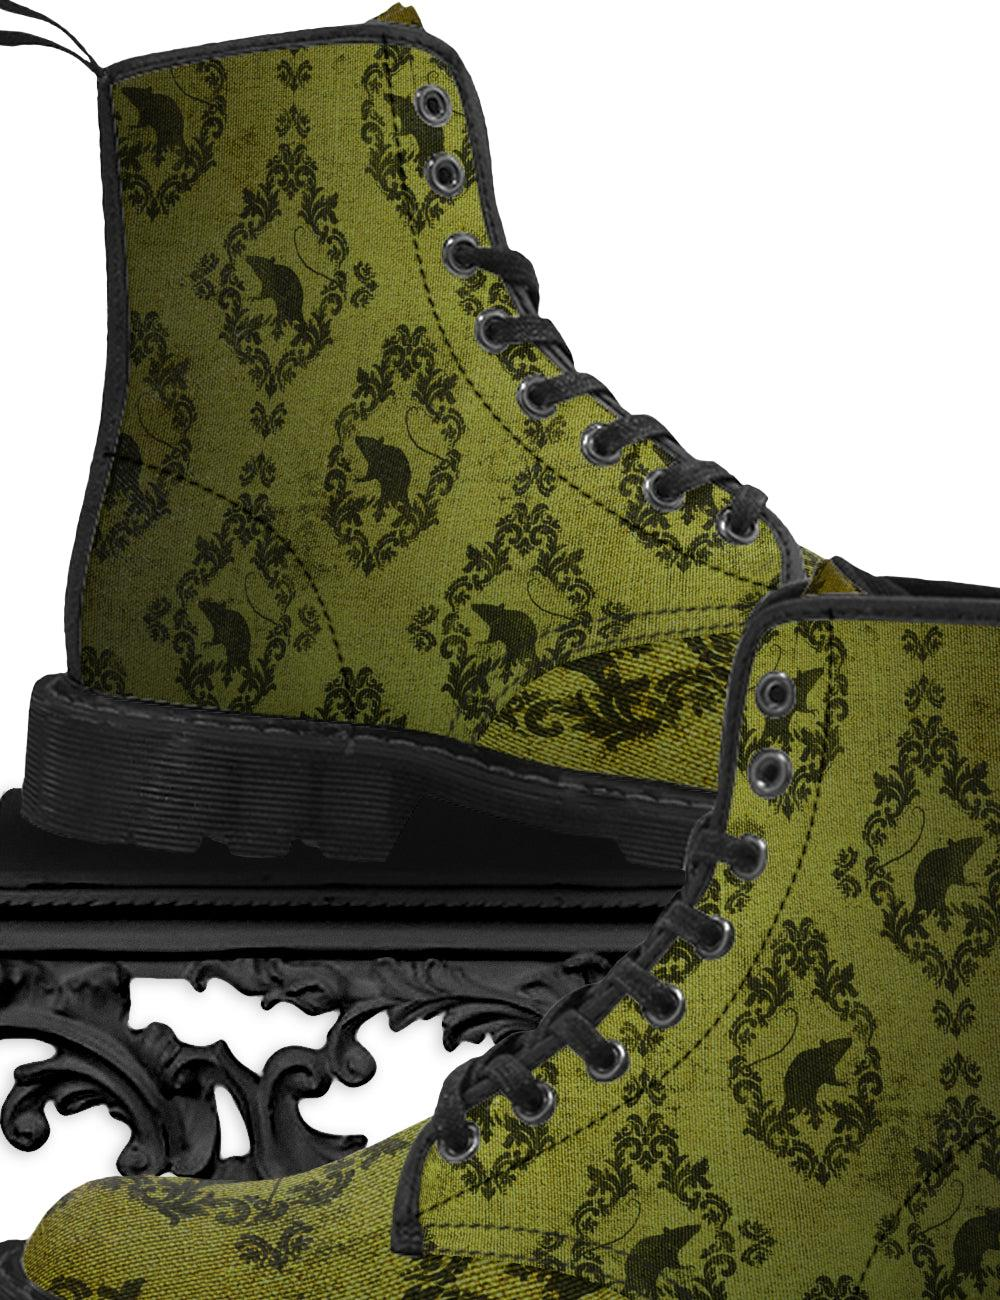 Victorian Rat Canvas Combat Boots in 'Stockill' | Gentleman's - The Asylum Emporium